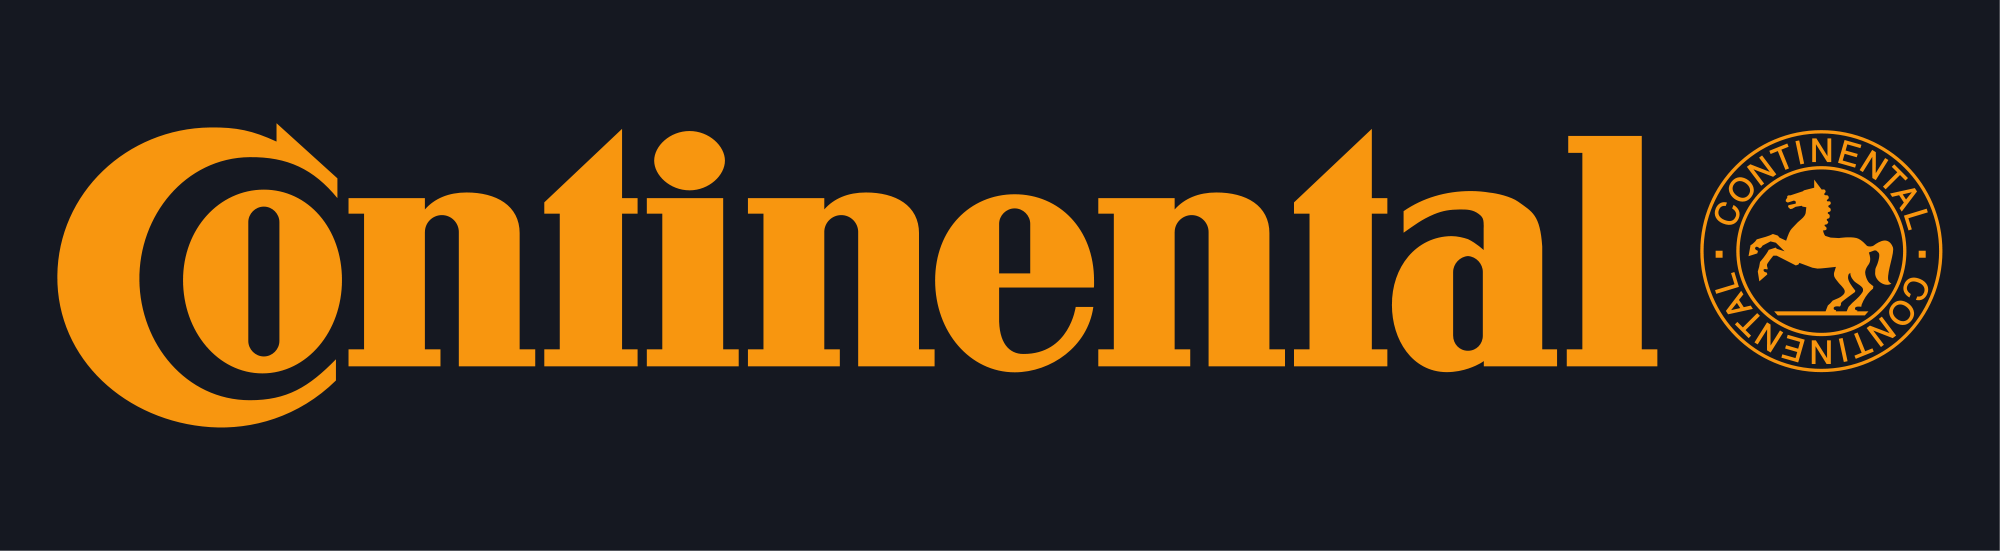 Continental-ag-logo.png - Continental PNG